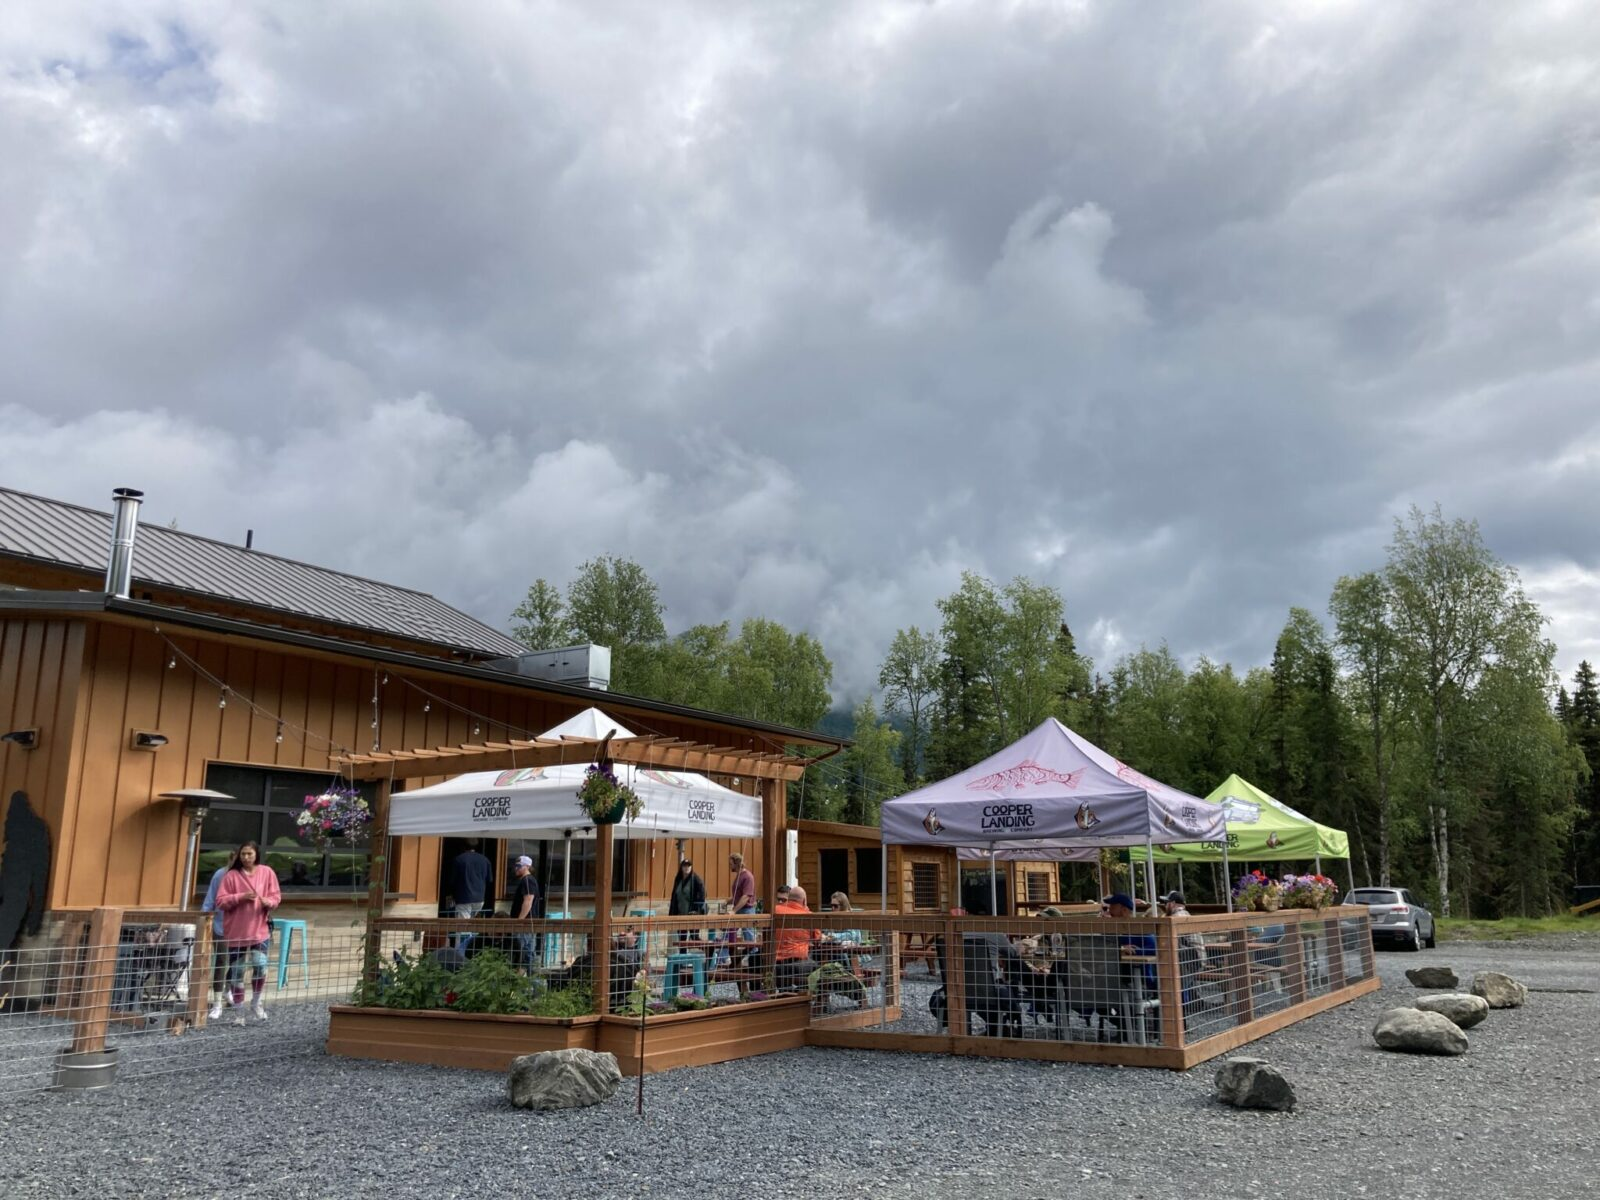 A fence with tables and tents over the tables at one of the breweries in Alaska. There is a large brown building and trees around a gravel parking lot next to the tents